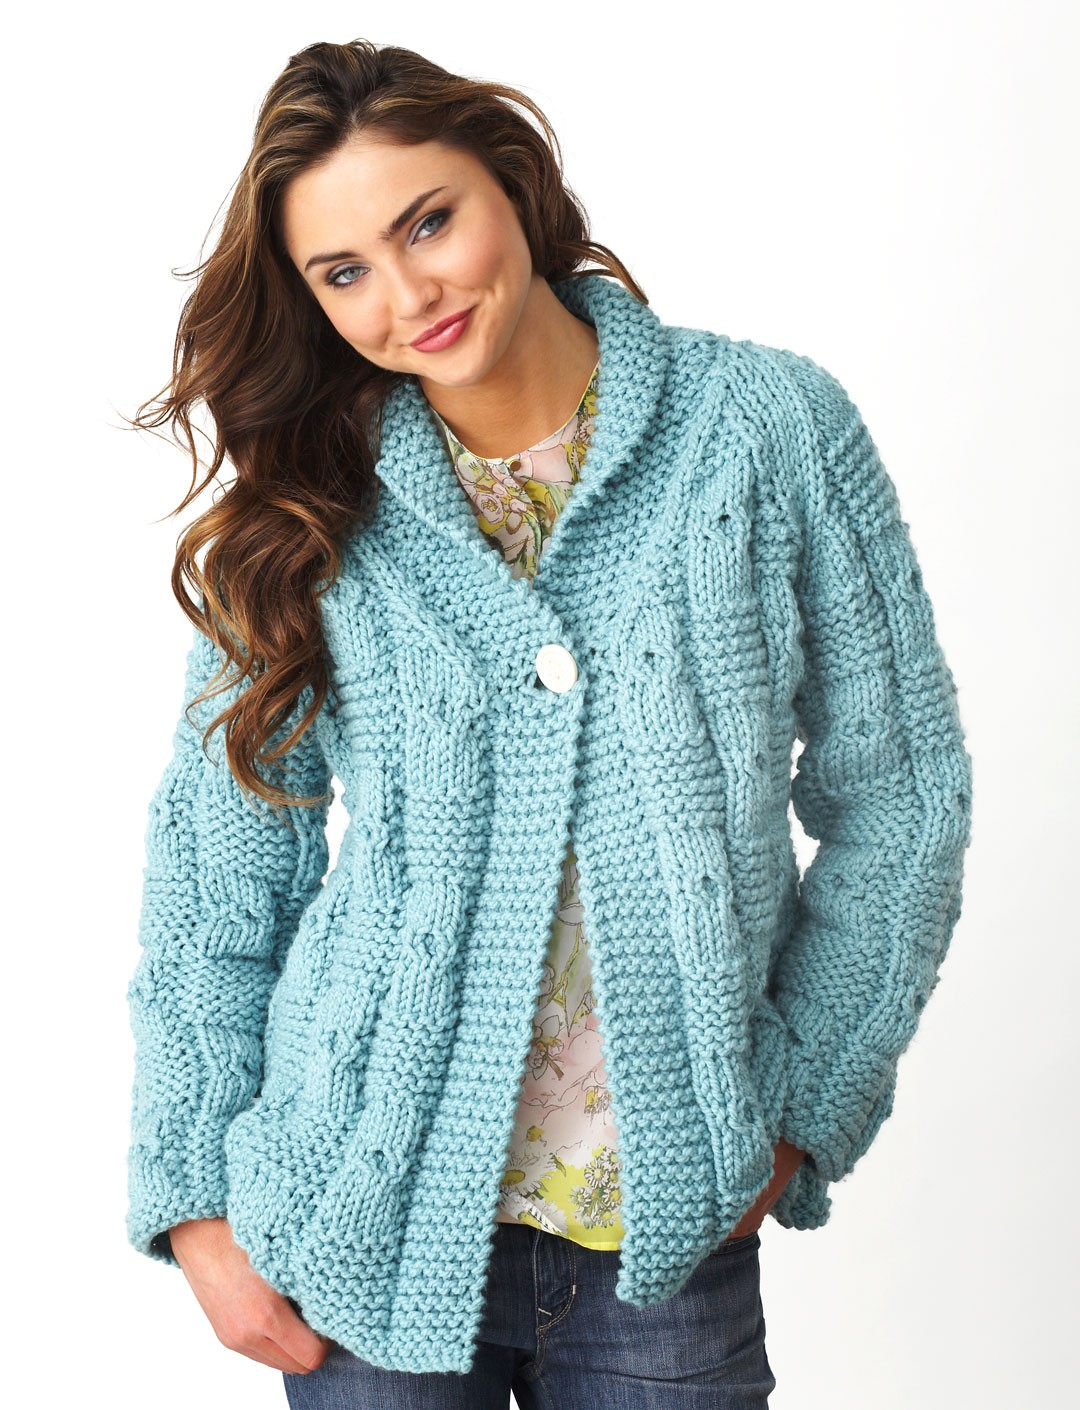 Knitting Sweater Patterns For Women : Bernat Textured Checks Cardigan, Knit Pattern Yarnspirations